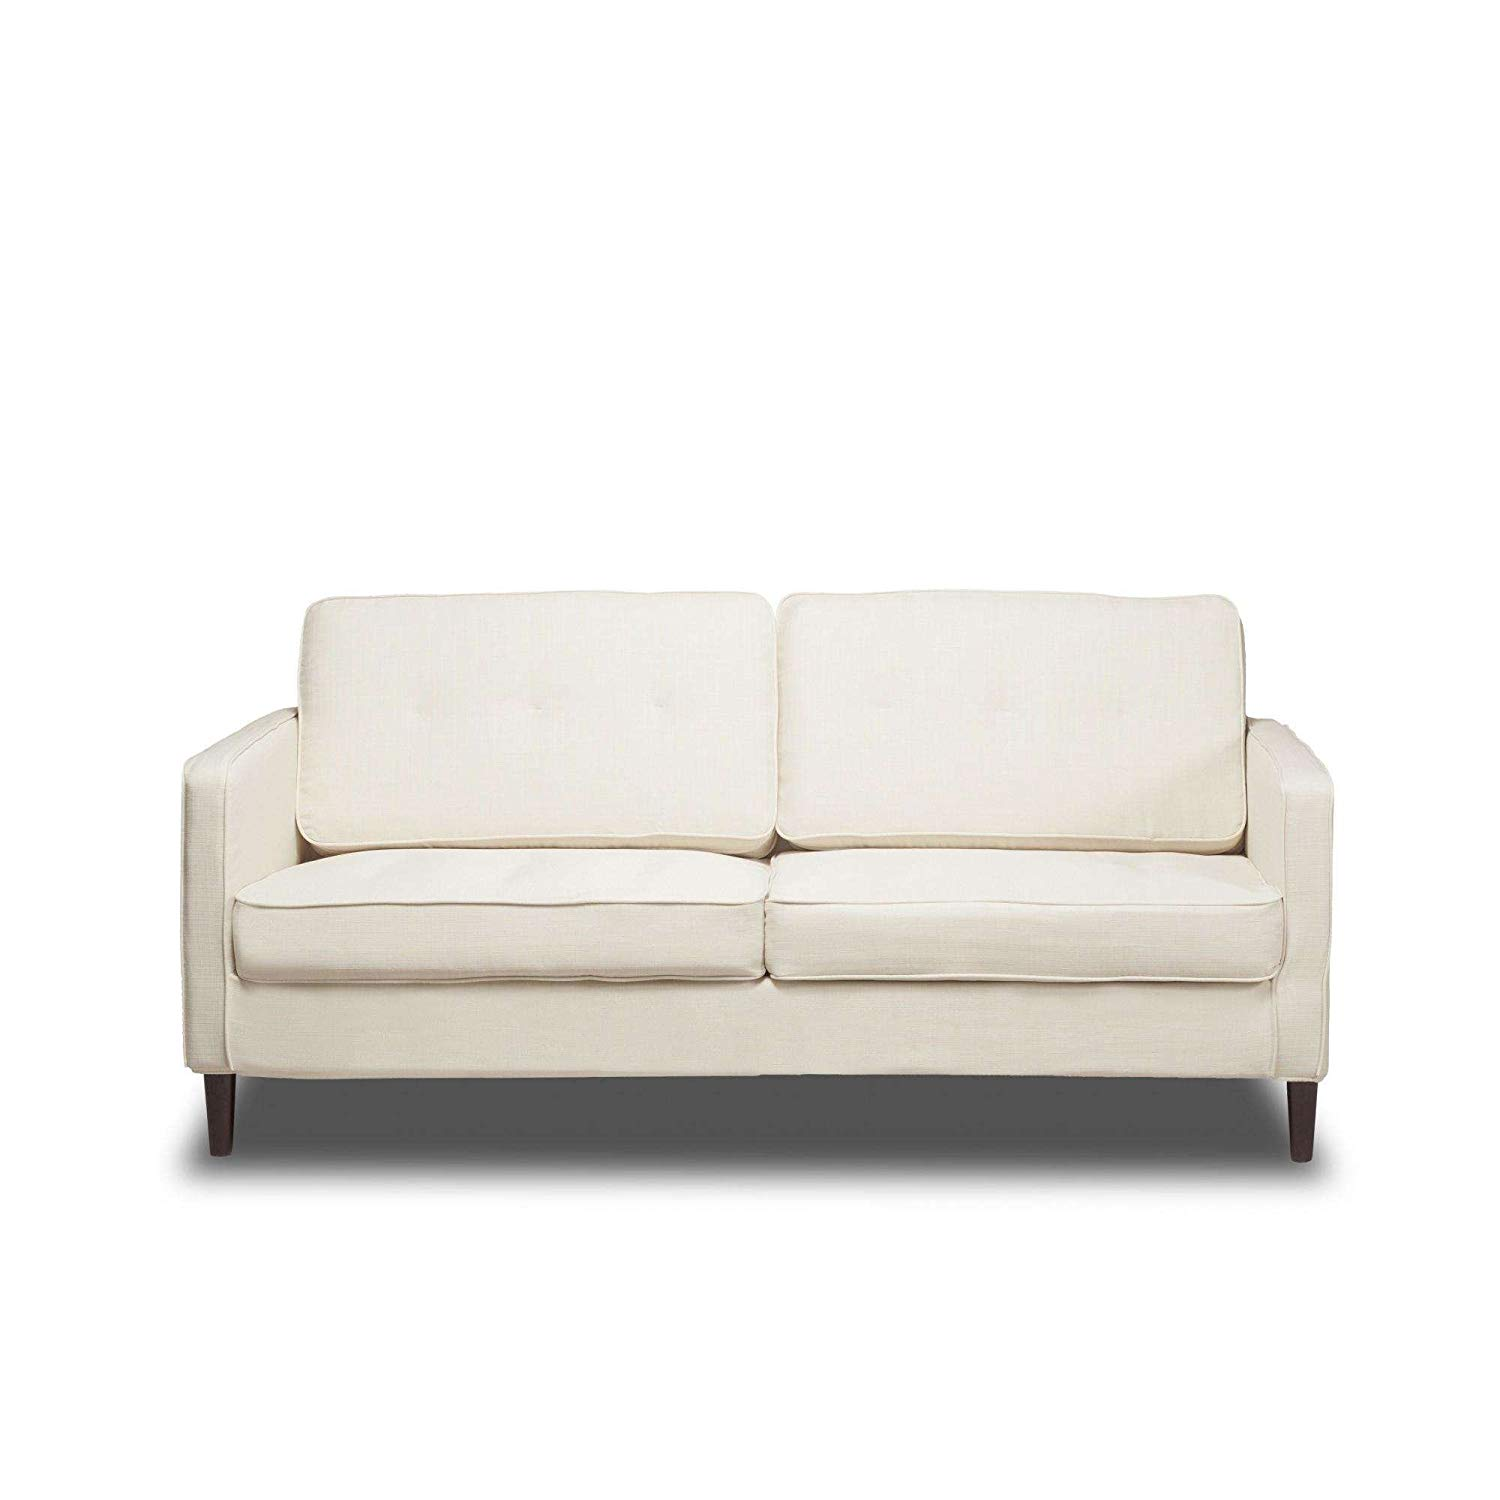 """Glacier 66"""" Upholstered Sofa, Pocket Coil Seat Cushions, Solid Wood Legs, Hardwood Solids, Metal Seat Frame, Removable Slip Cover, Bundle with Our Expert Guide with Tips for Home Arrangement"""